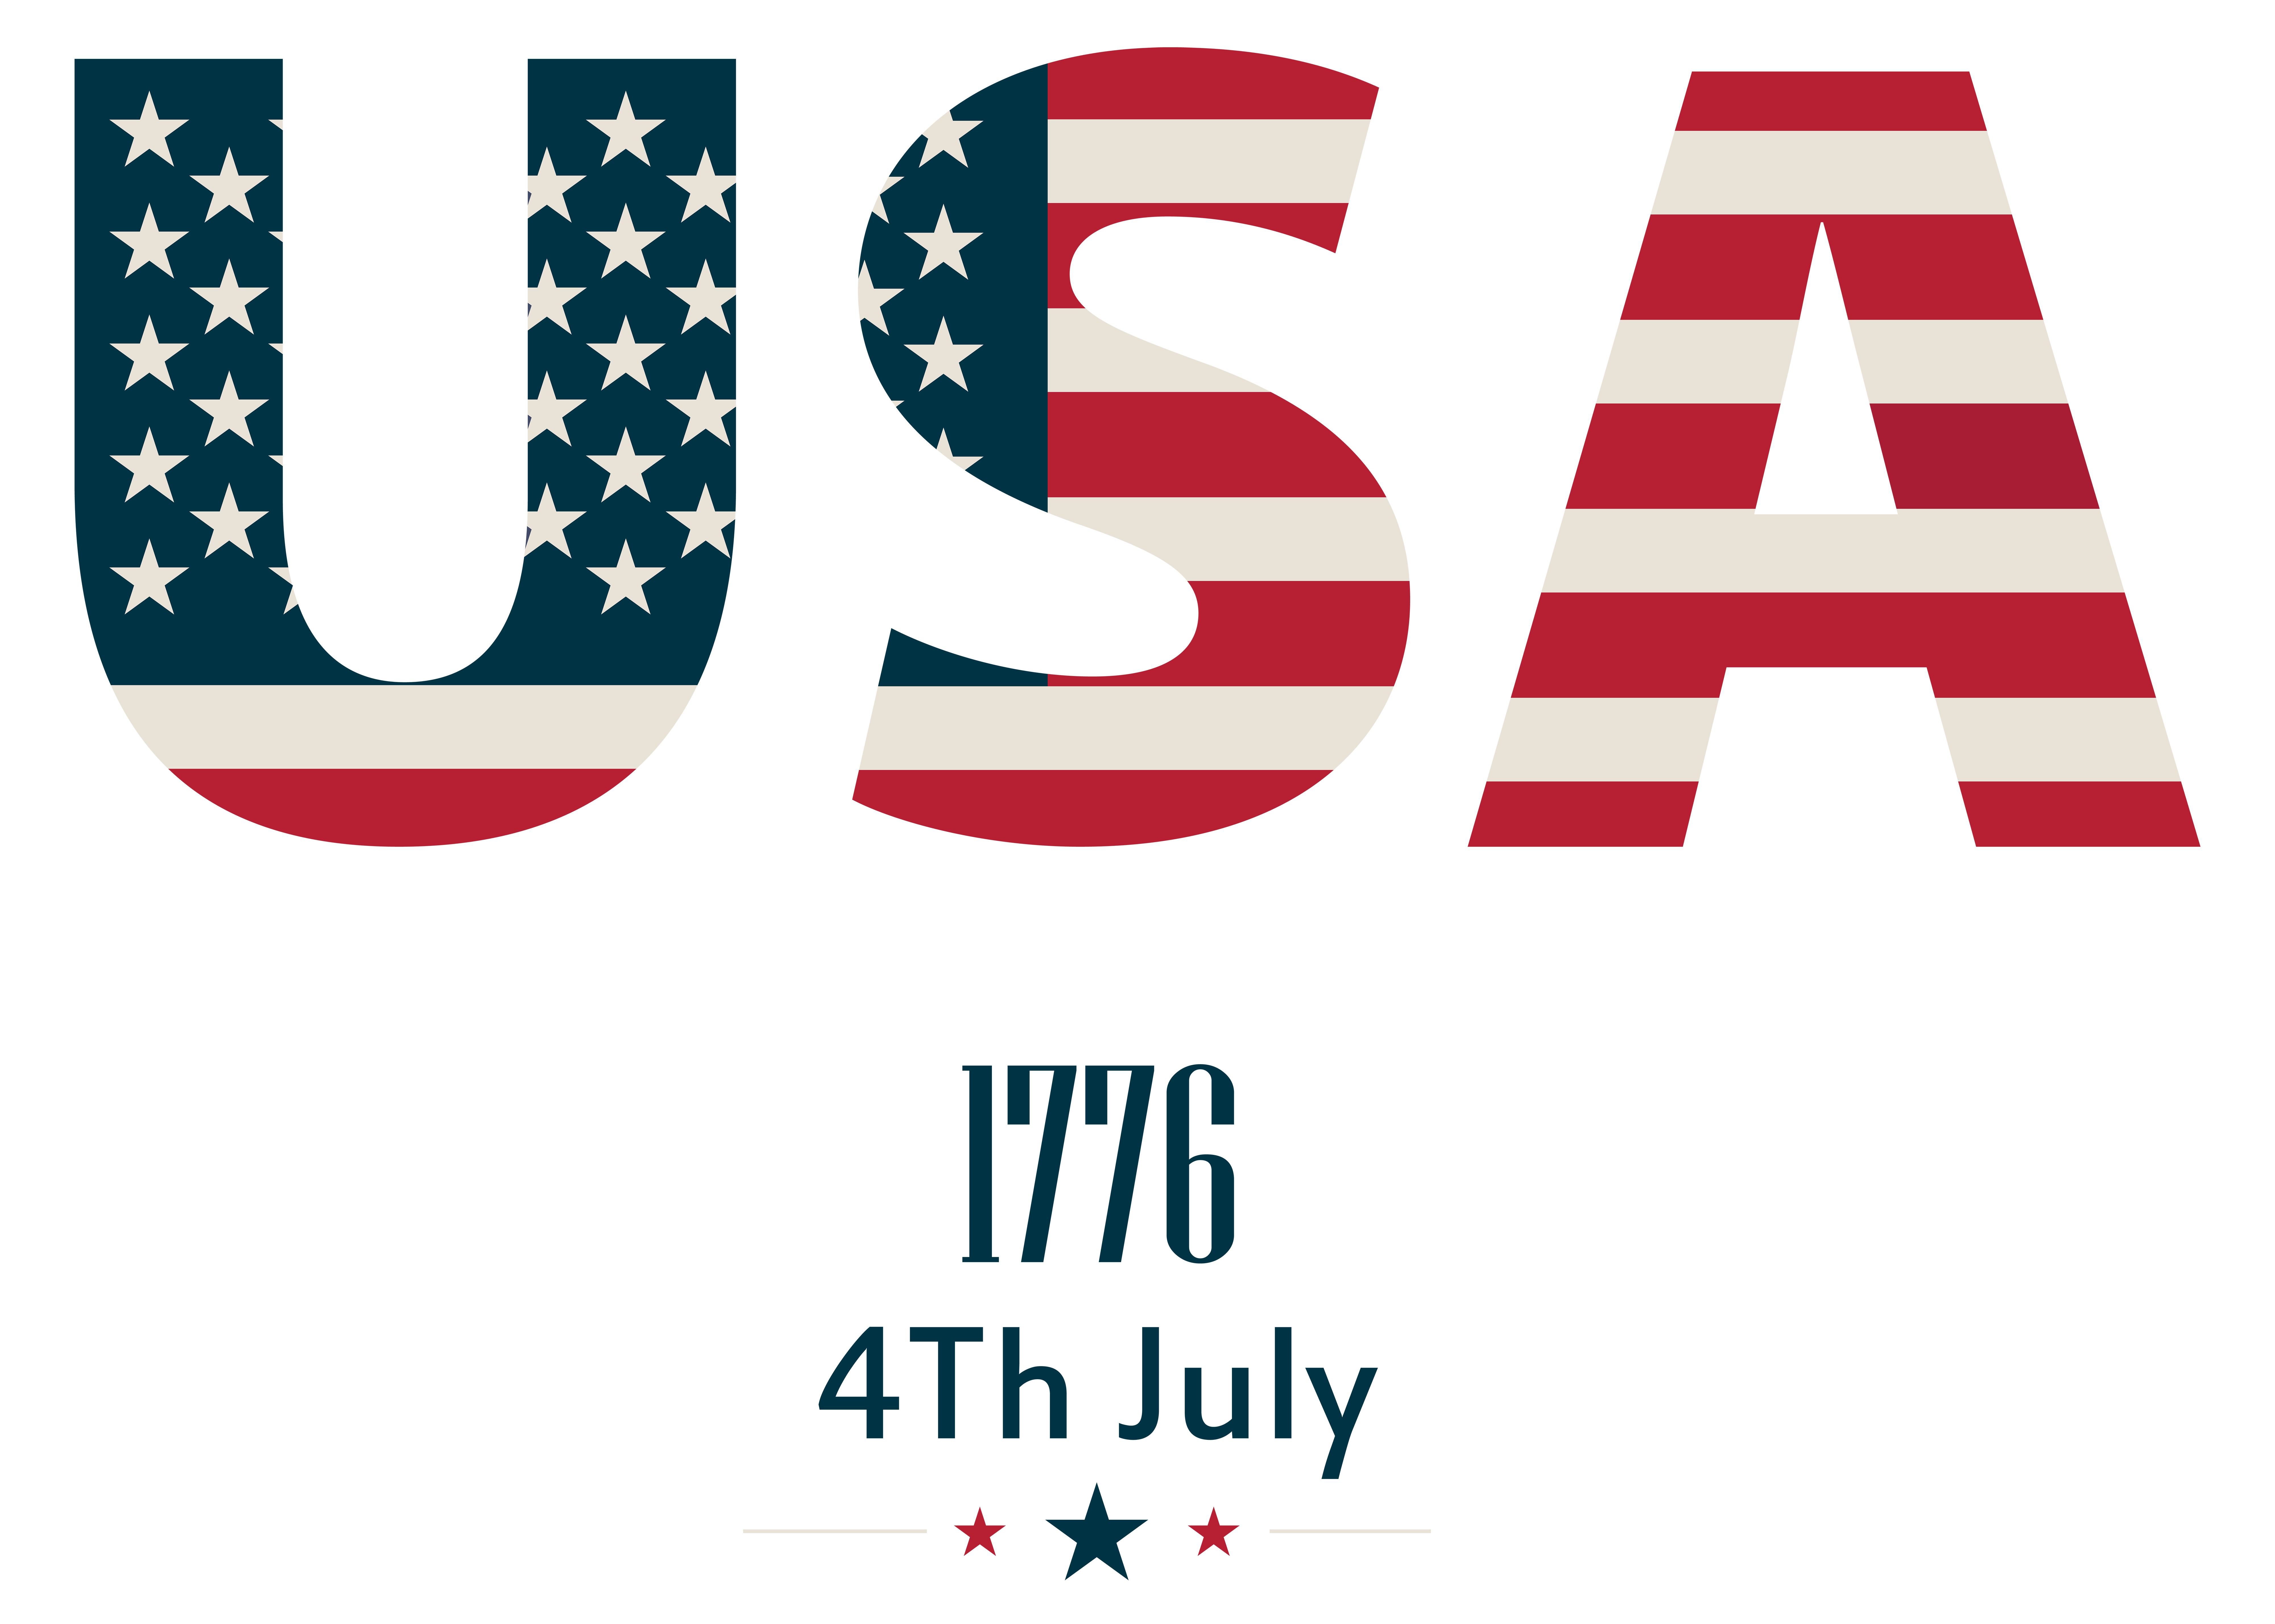 Png clip art image. Usa clipart